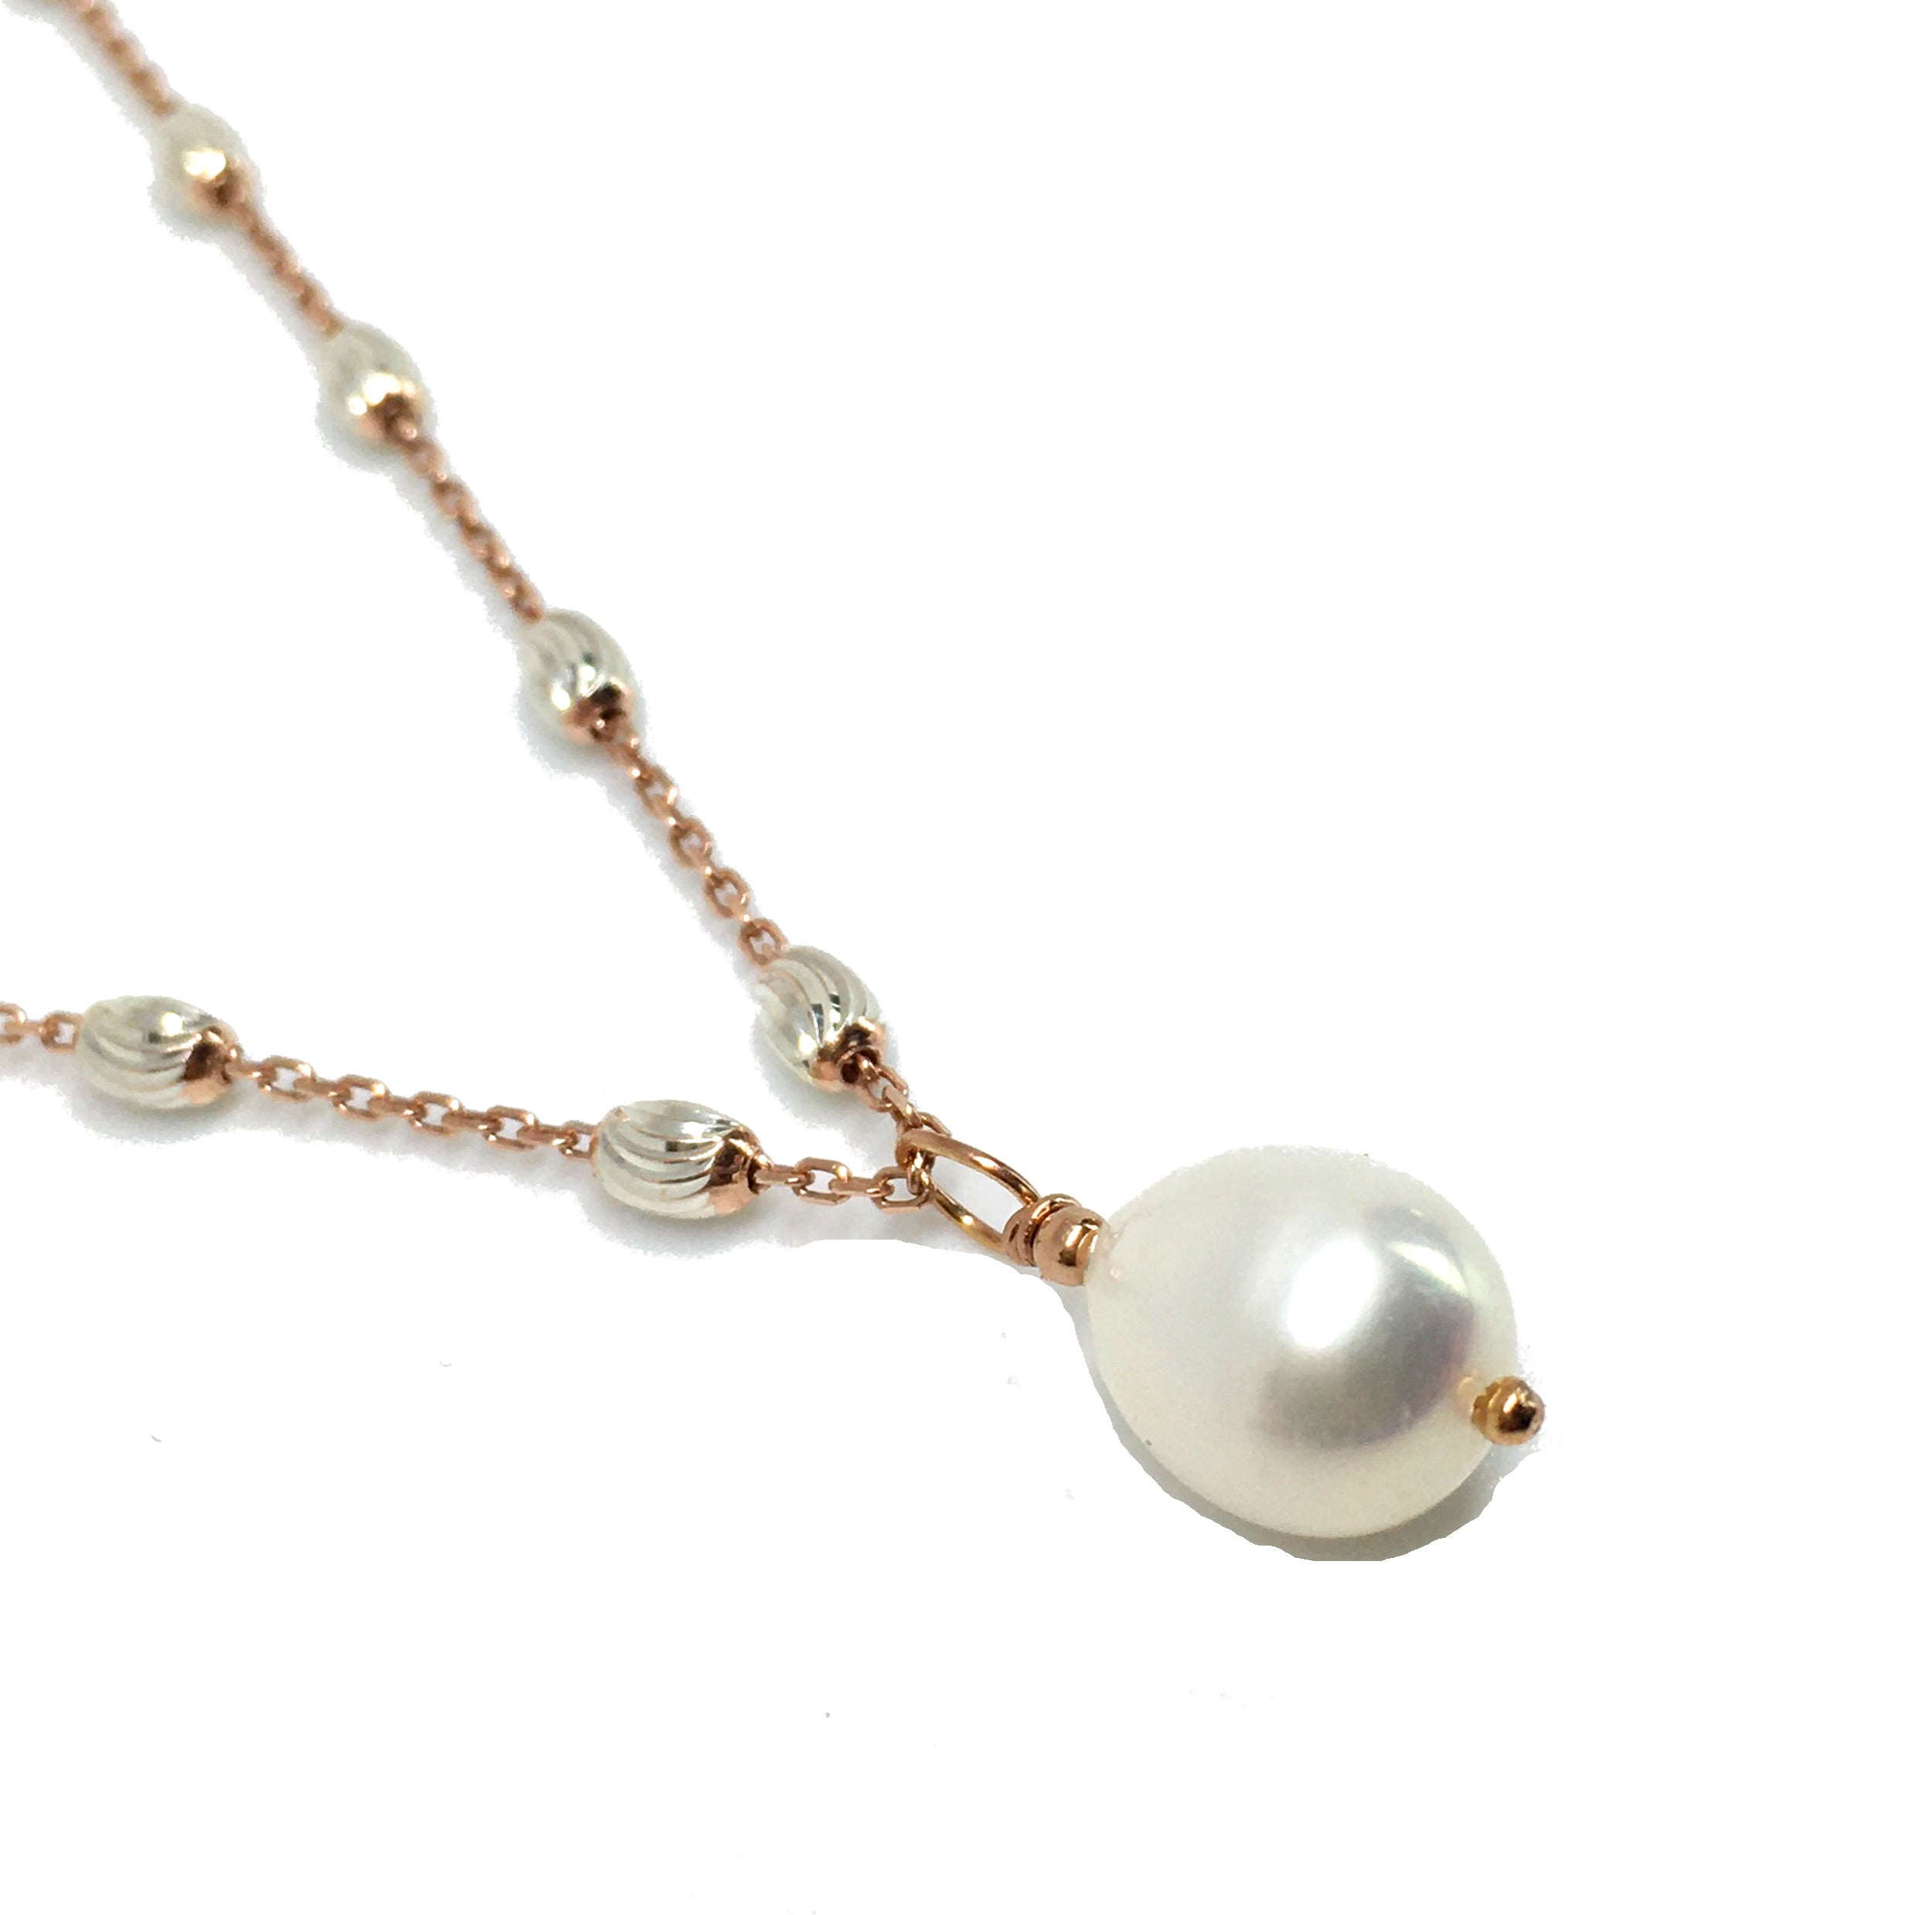 pear shaped white pearl pendant necklace on rose gold filled station chain necklace